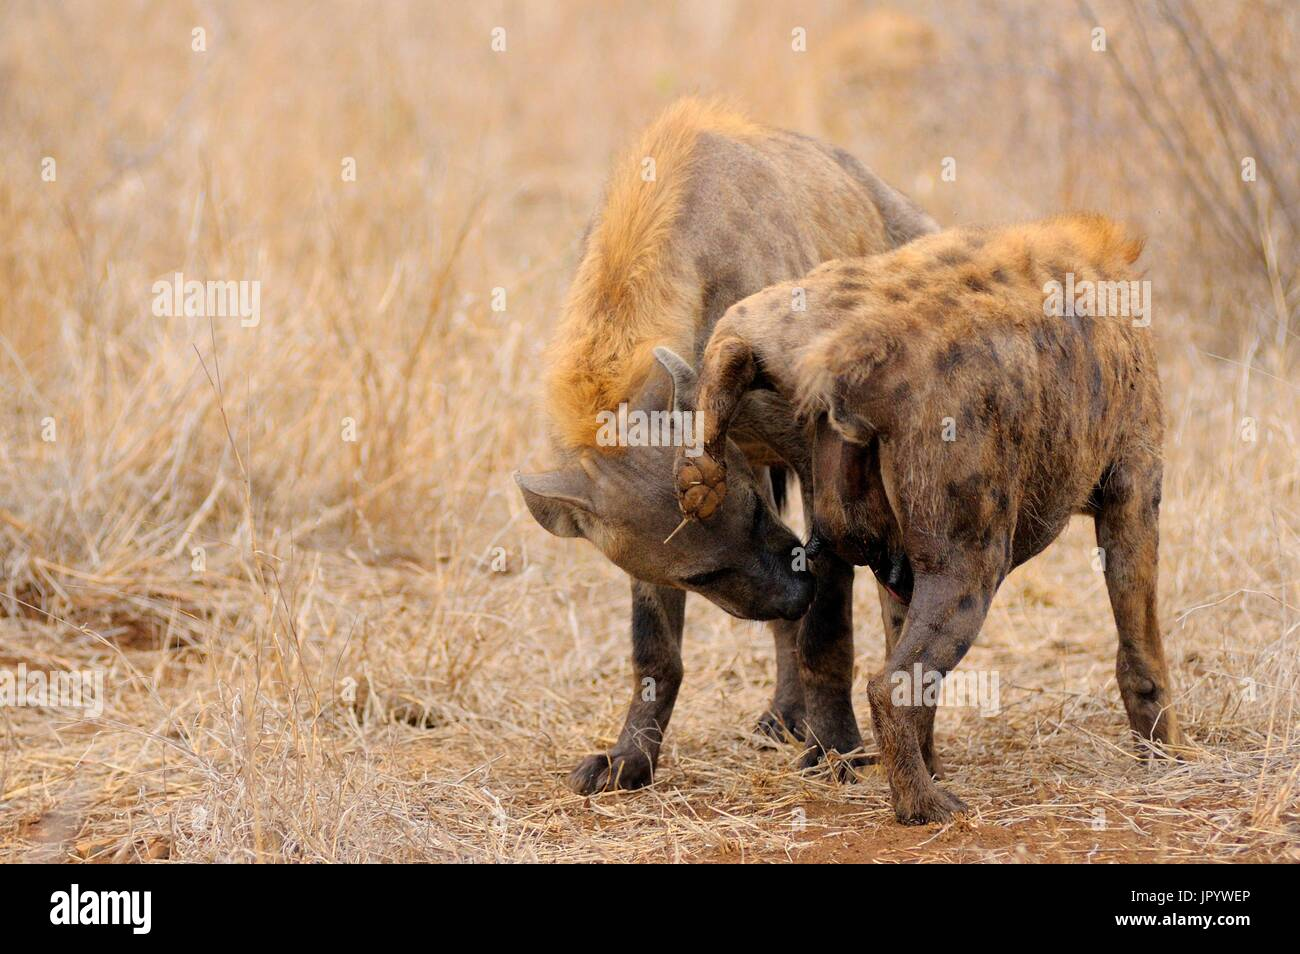 Regular inspection of genitalia of the spotted Hyena (Crocuta crocuta) dominated by dominant individuals, Kruger National Park, Mpumalanga, South Africa - Stock Image